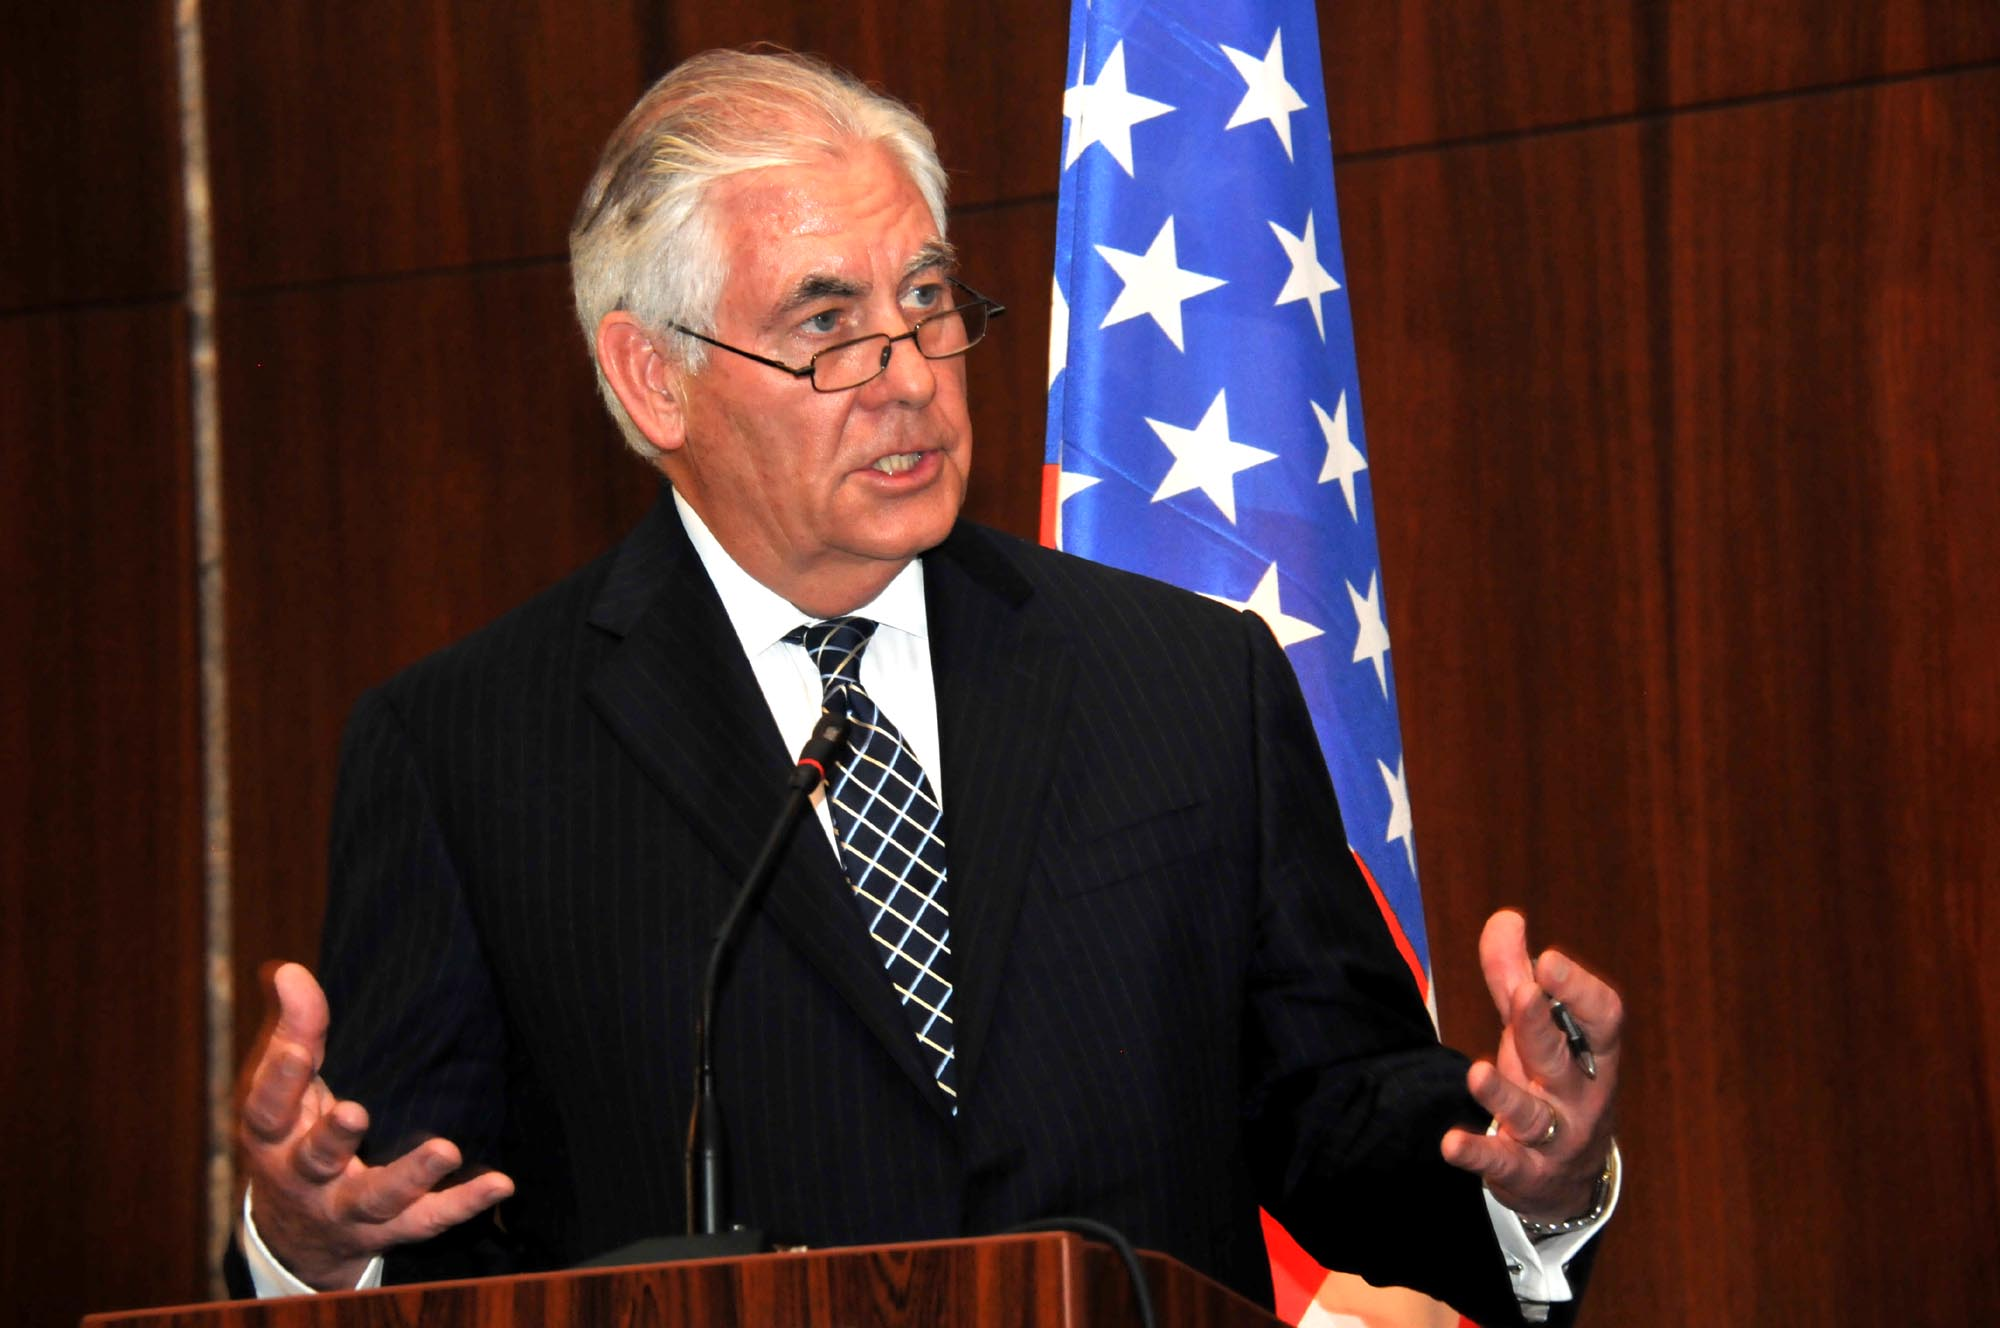 U.S. Secretary of State Tillerson meets Buhari, speaks on #DapchiGirls